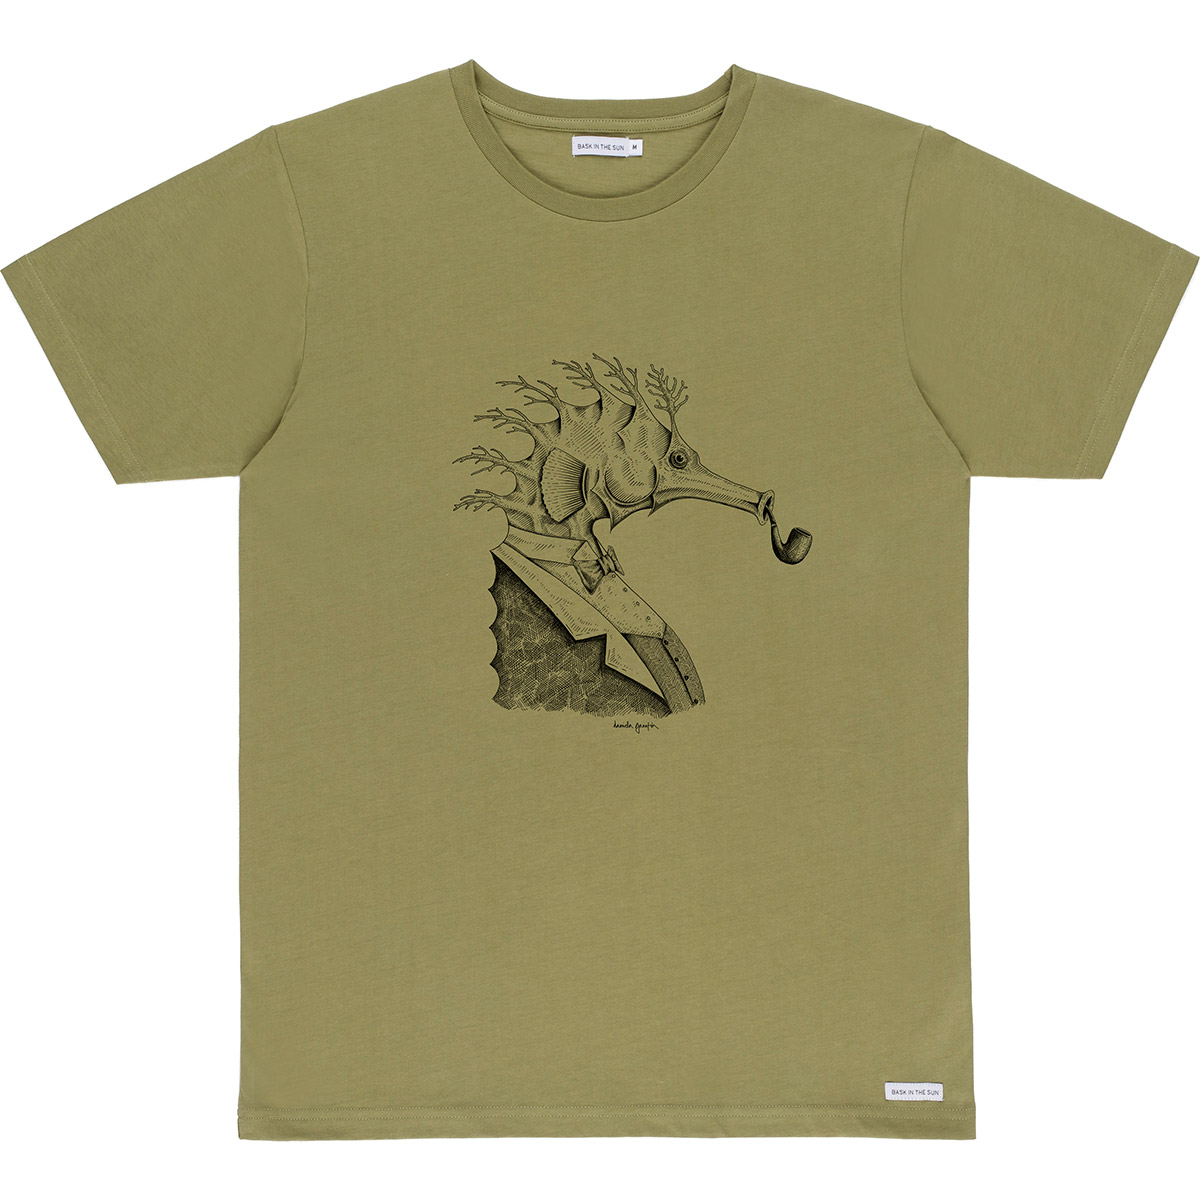 T-shirt en coton bio kaki hippocampe - Bask in the Sun